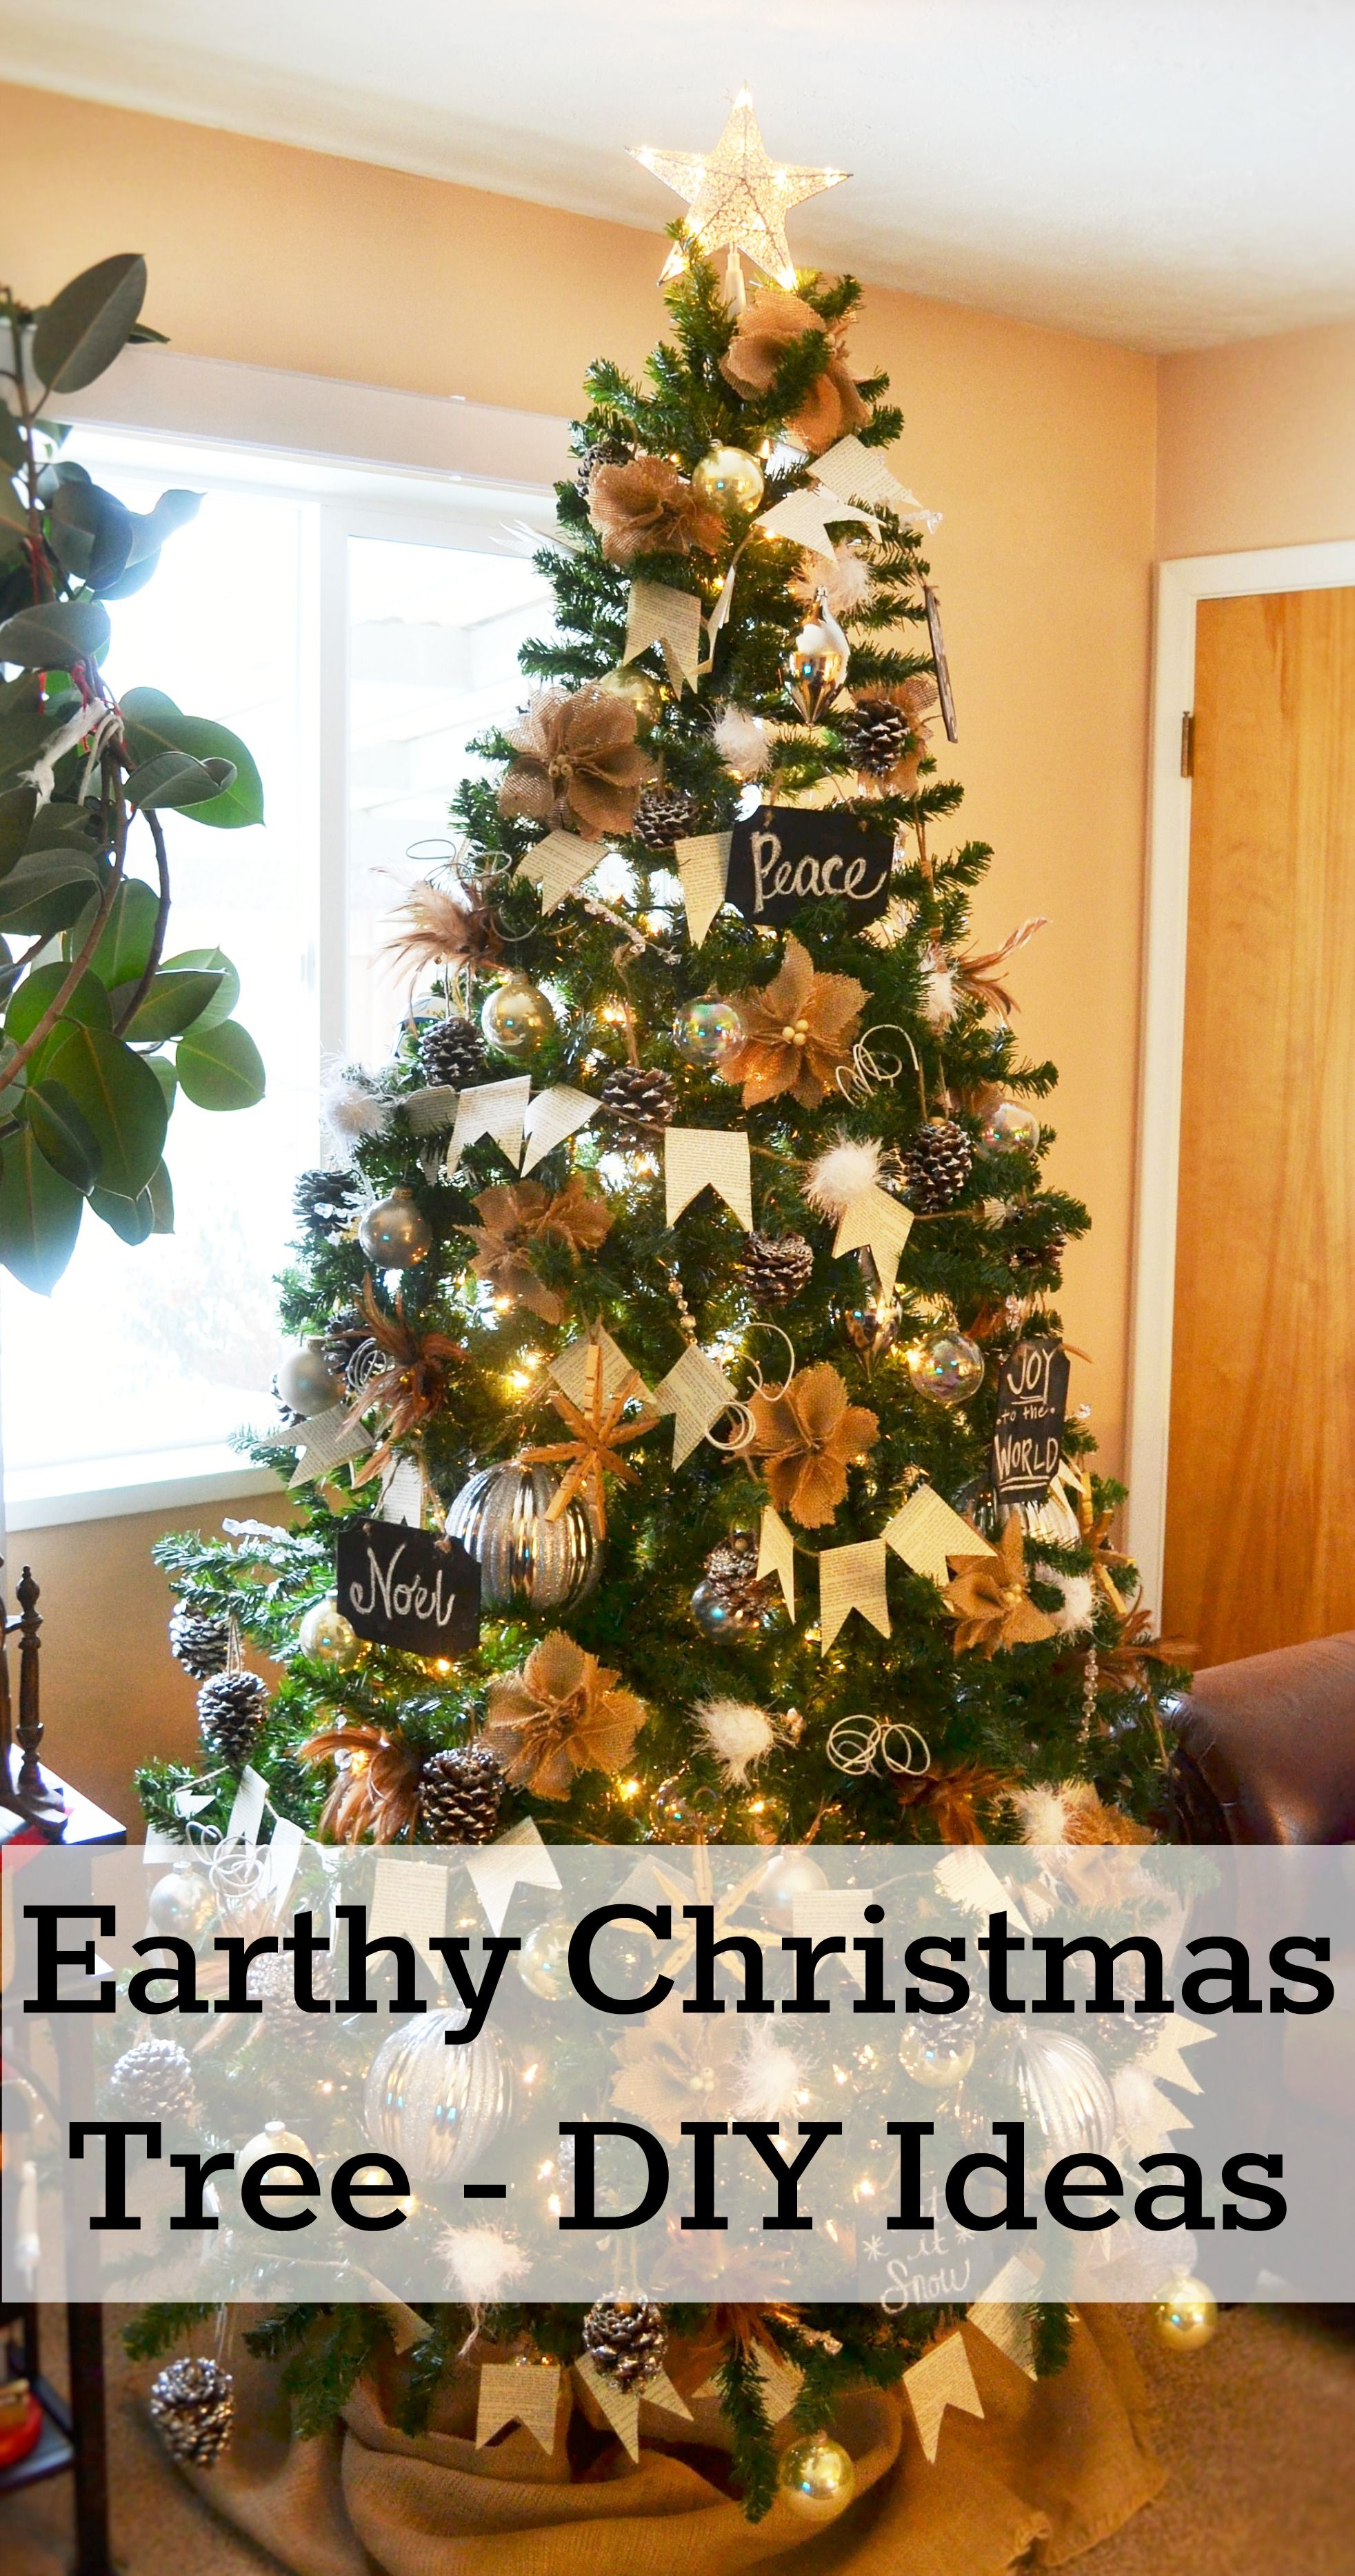 Earthy Christmas Tree Decor Ideas Simple Diy Ornaments To Add To Your Collection Christmas Tree Decorations Outdoor Christmas Tree Diy Christmas Tree